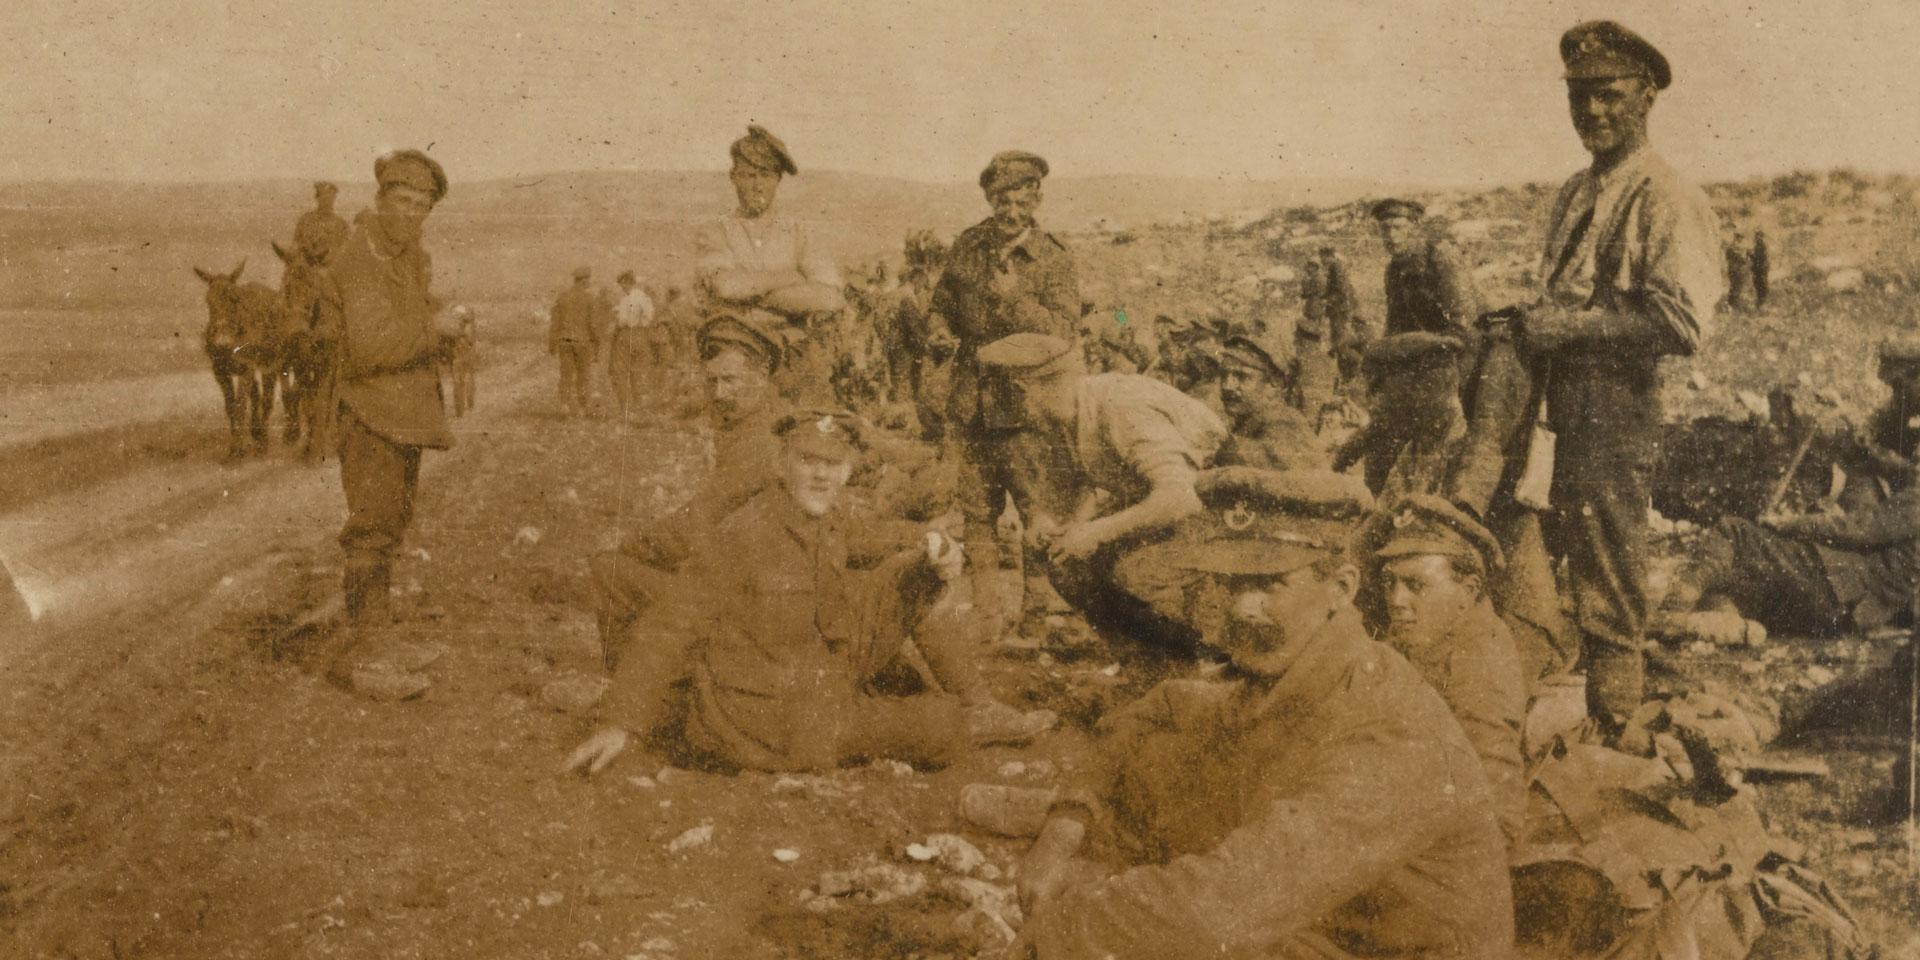 Members of 10th (Shropshire and Cheshire Yeomanry) Battalion The King's Shropshire Light Infantry in Palestine, 1917